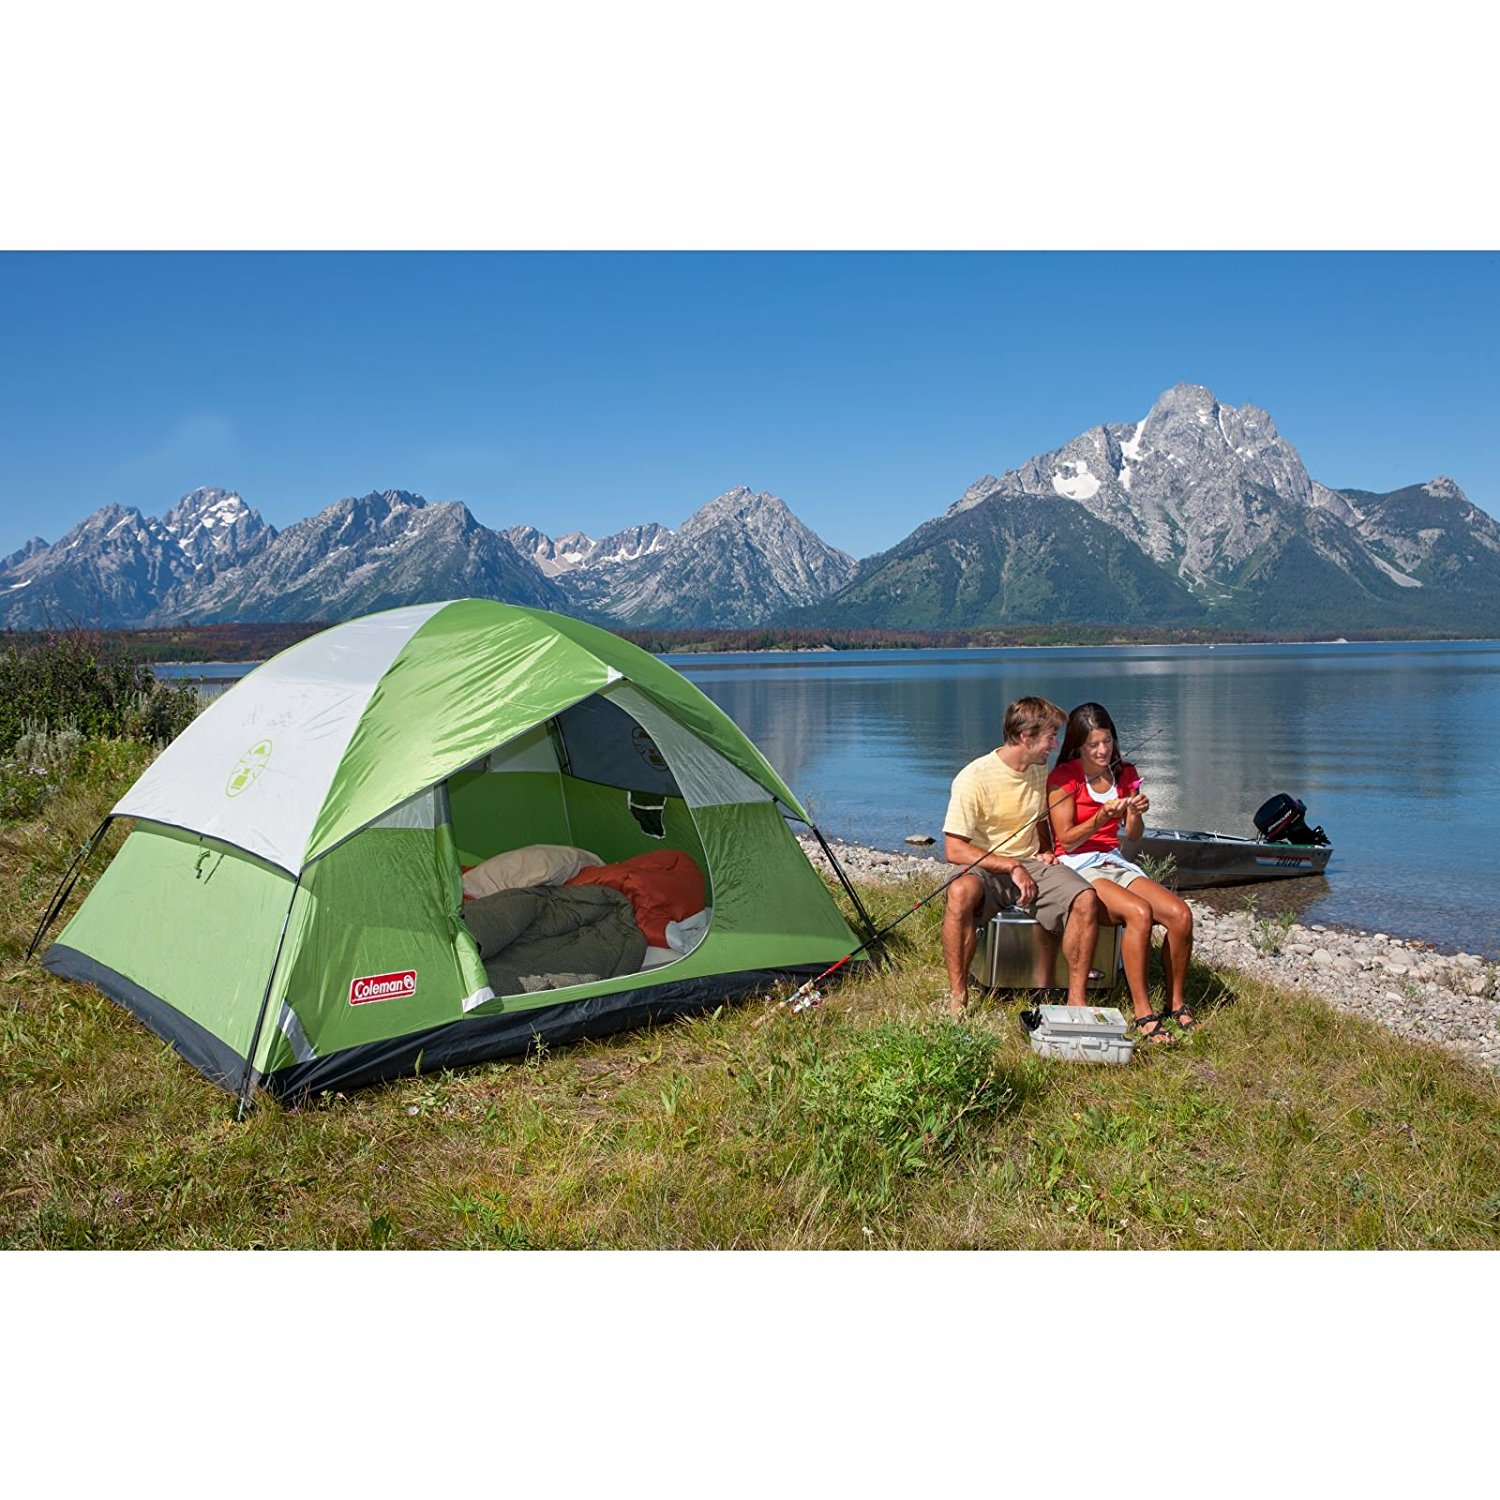 x photo trail room walmart of tent cabins cabin with screen screened com instant porch ozark person